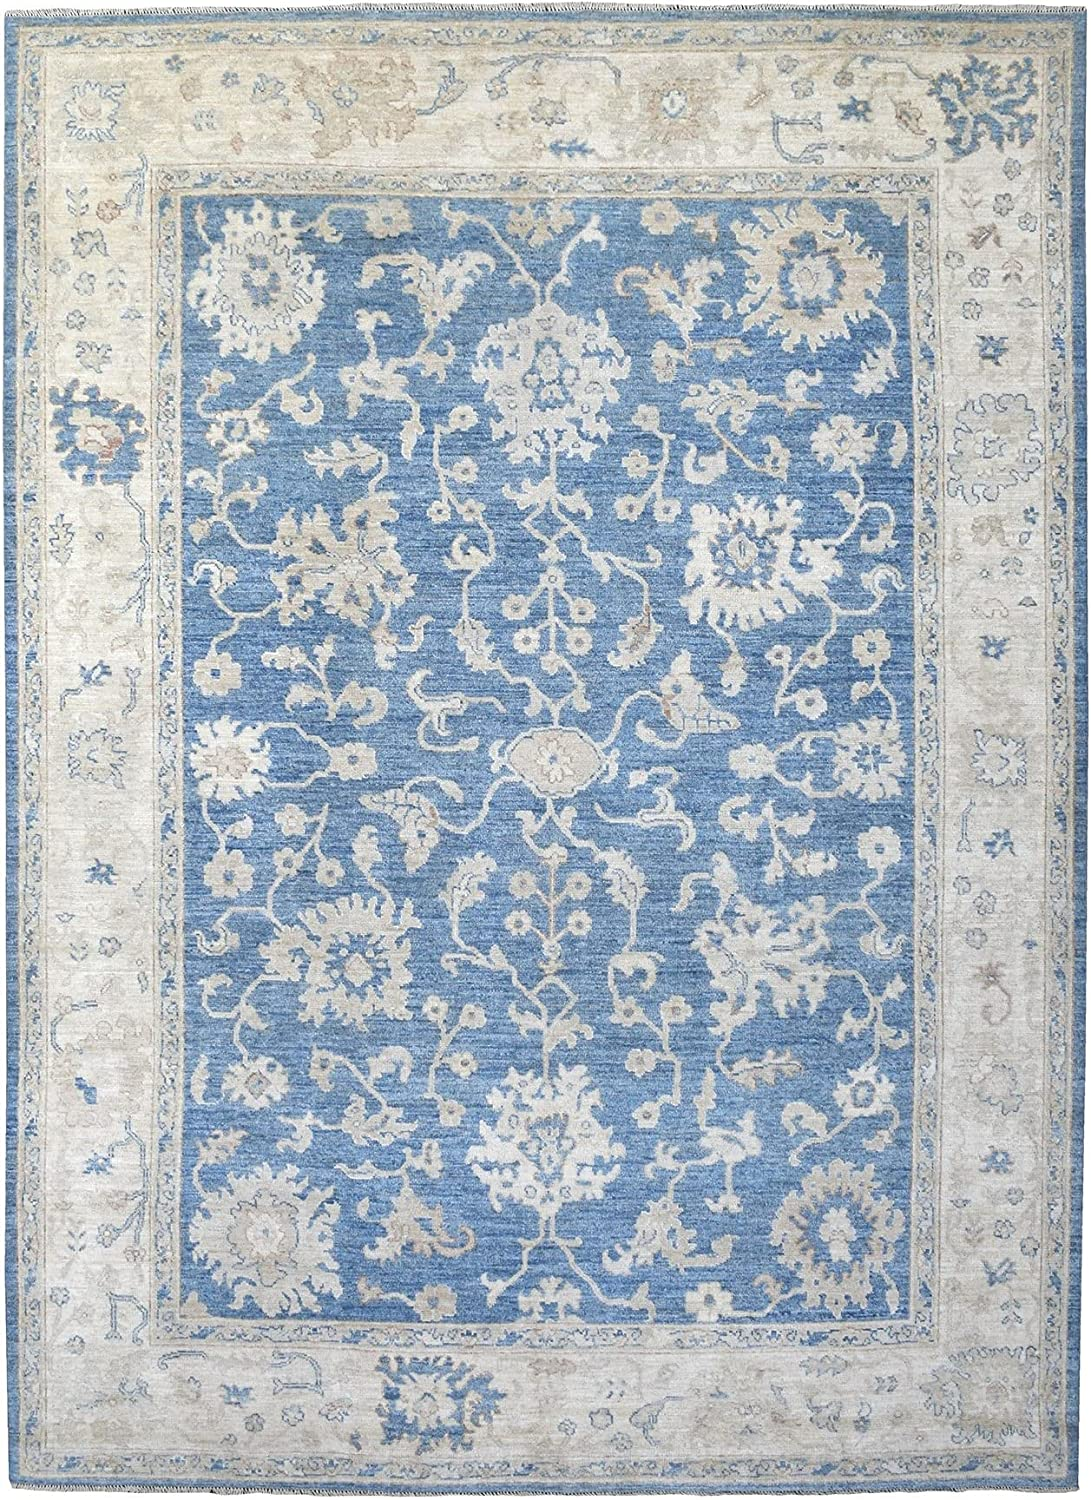 Shahbanu Rugs Hand Knotted Denim Max 79% OFF Oushak Blue Extremely Lowest price challenge Angora Du